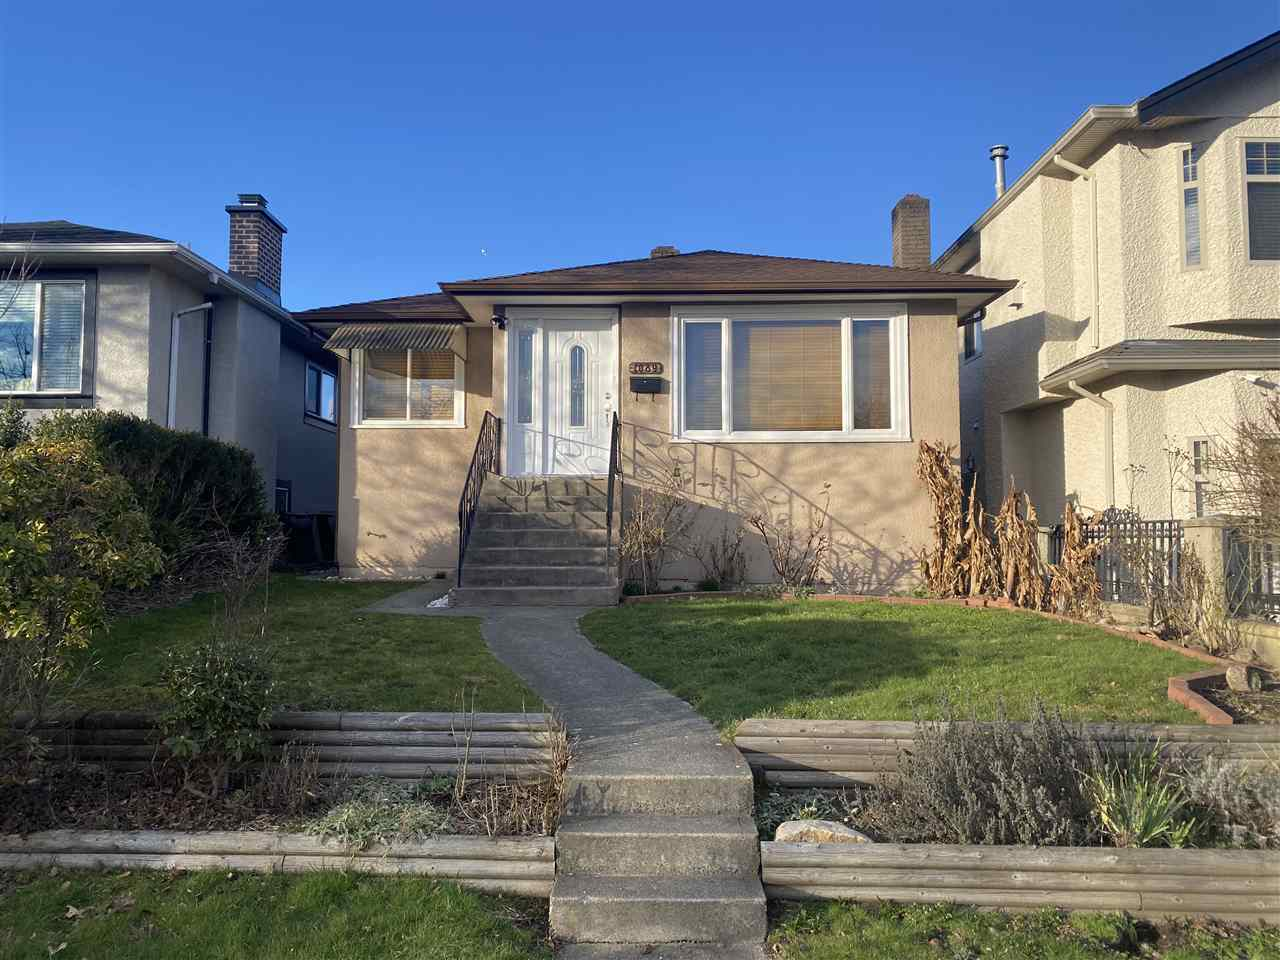 1089 E 58TH AVENUE - South Vancouver House/Single Family for sale, 4 Bedrooms (R2542058)